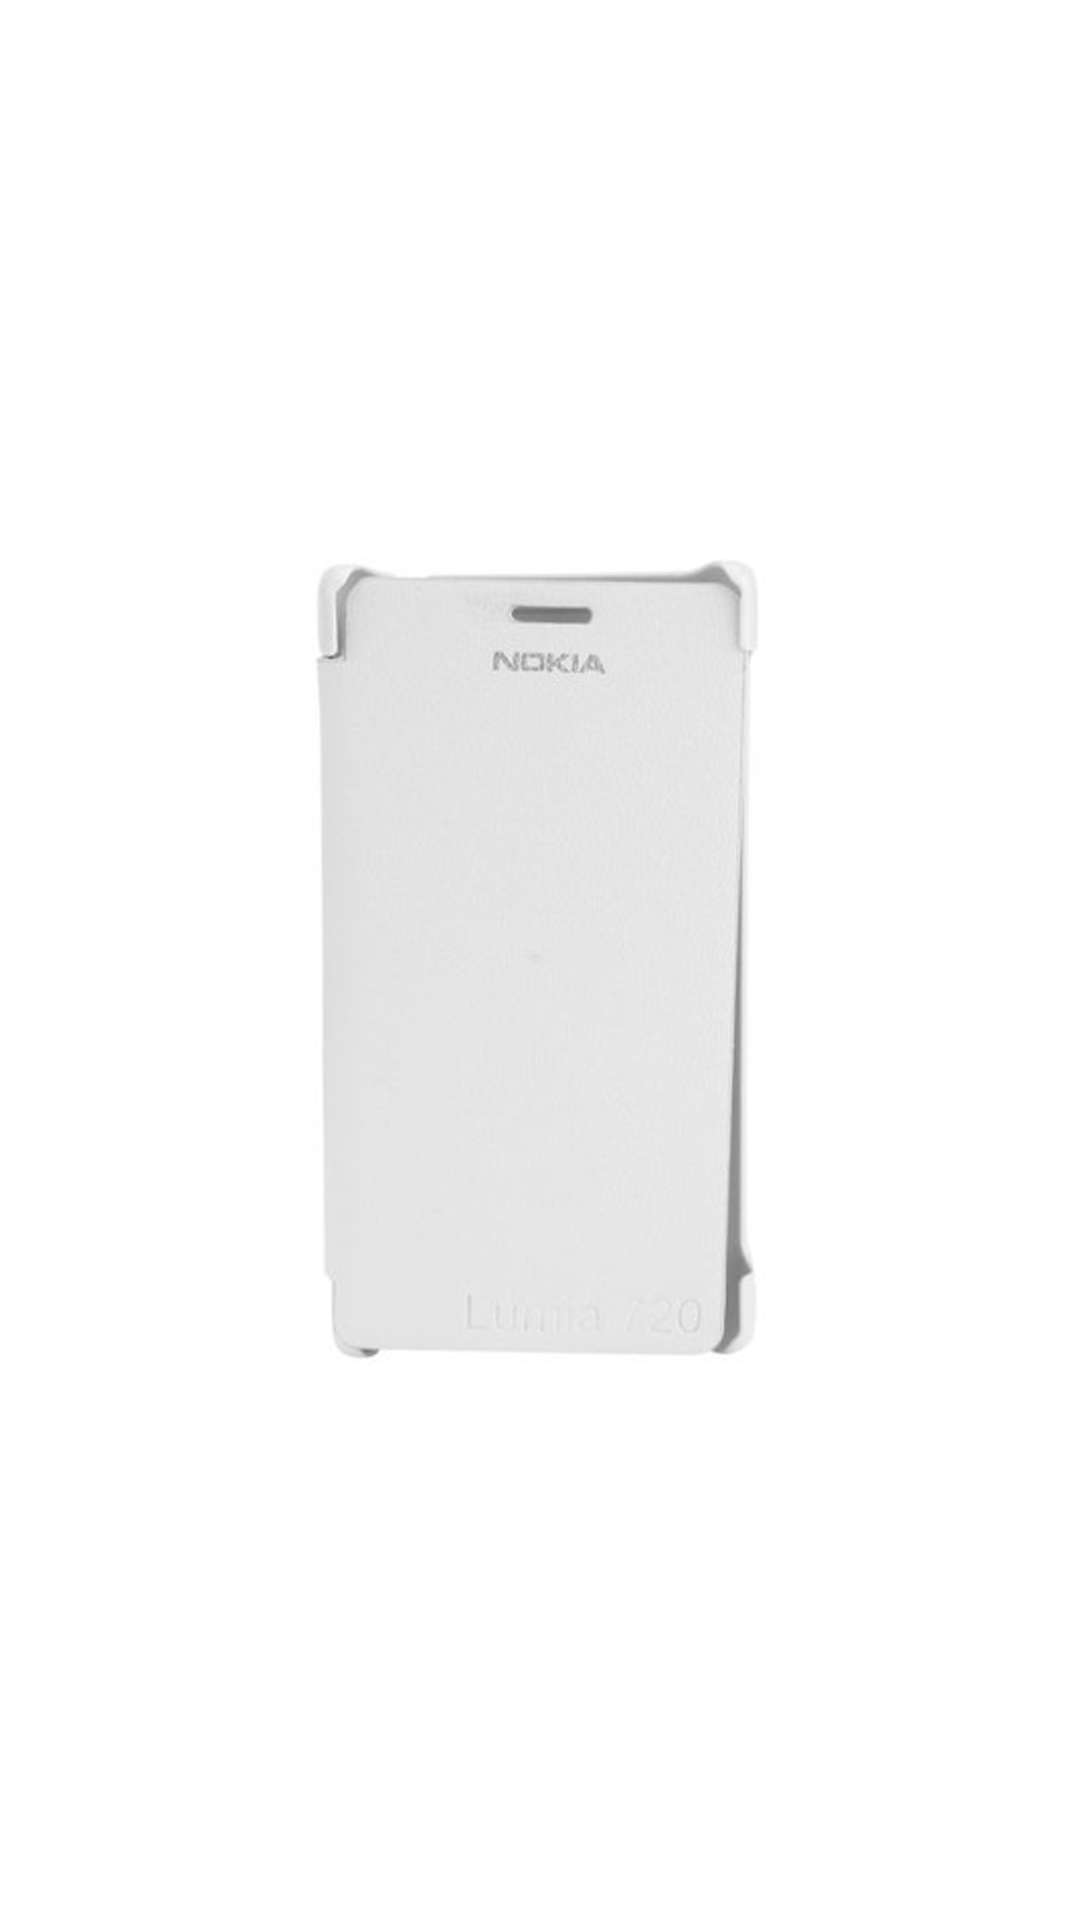 YGS Flip Cover For Nokia Lumia 720  White  available at Paytm for Rs.145